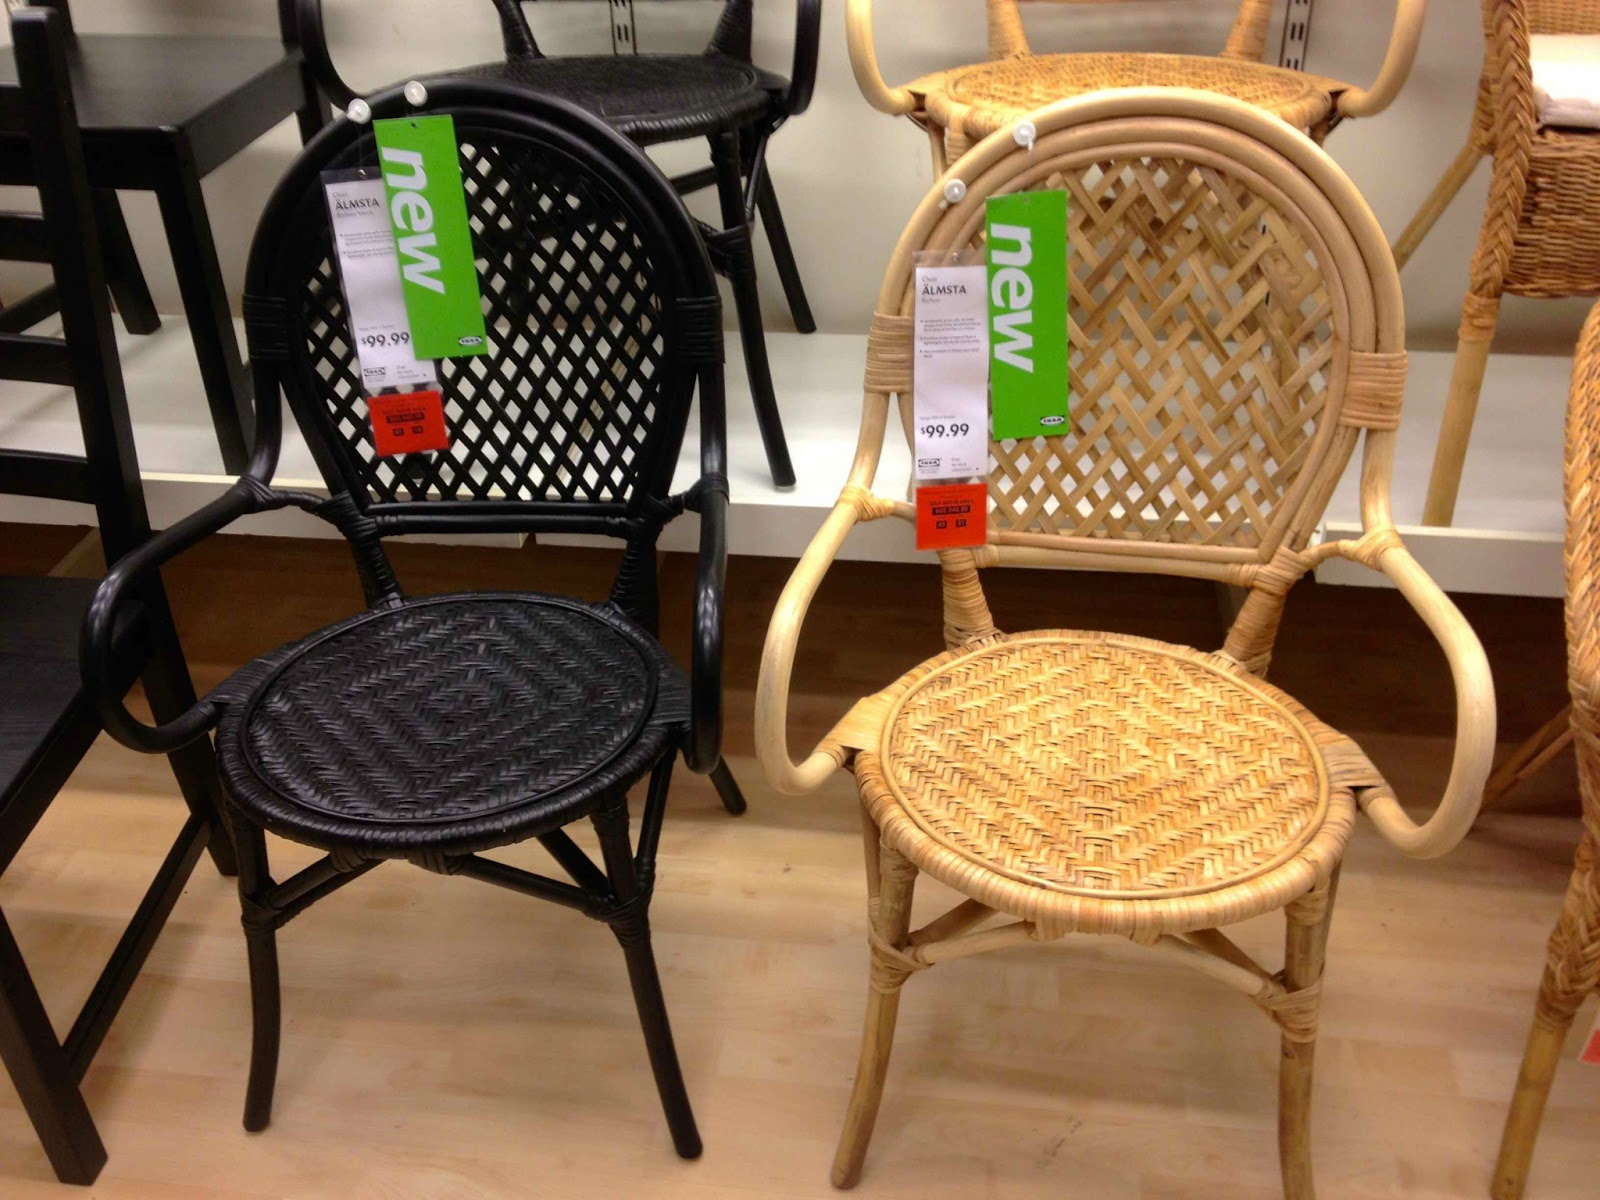 New finds at ikea driven by decor - Wicker dining chairs ikea ...